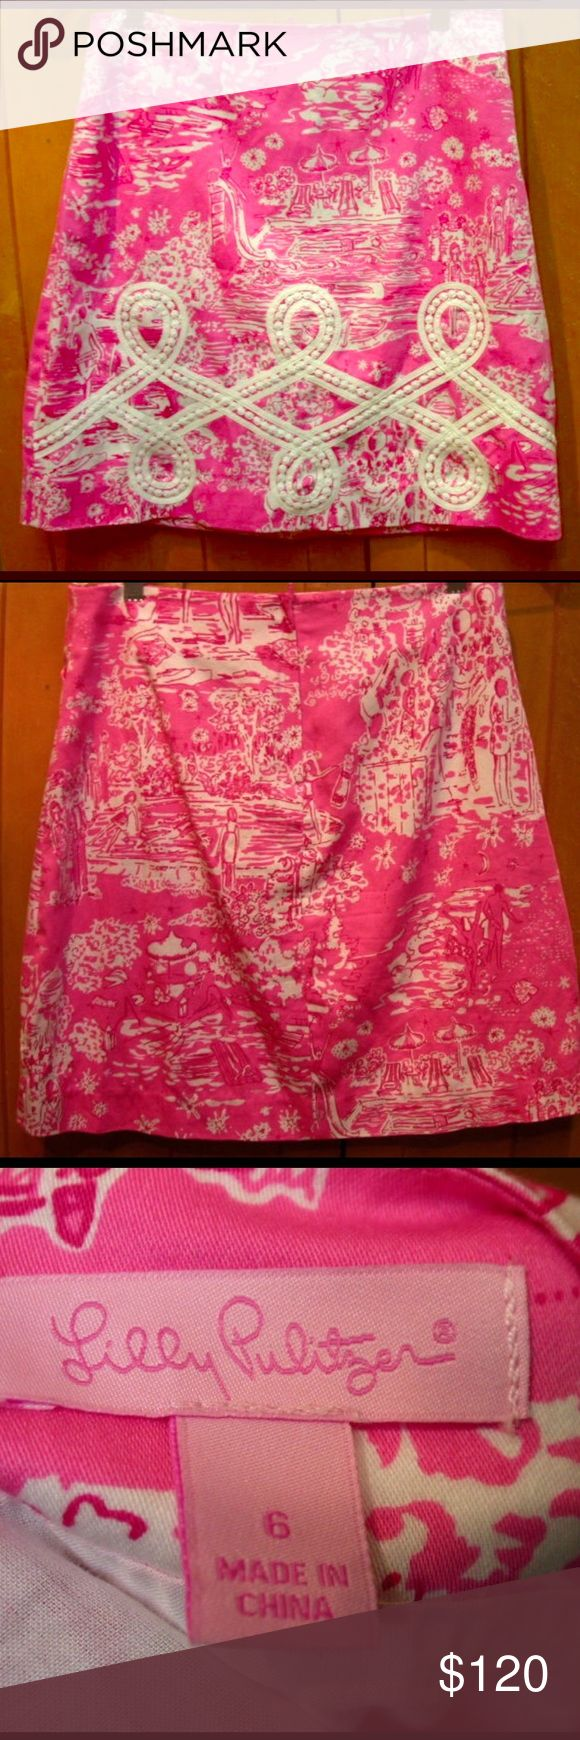 Lilly Pulitzer Skinny Dippin Roslyn Size 6 GORGEOUS Roslyn skirt in skinny dippin, so cute and so perfect for any lady who loves a classic Lilly print. The print placement is PERFECT on the. Censored people ALL over it and it's in FLAWLESS condition!!!! It's a size 6 and so bright and pretty! Please feel free to make an offer! And if you have any questions just ask! Thanks for looking!!! Lilly Pulitzer Skirts Mini